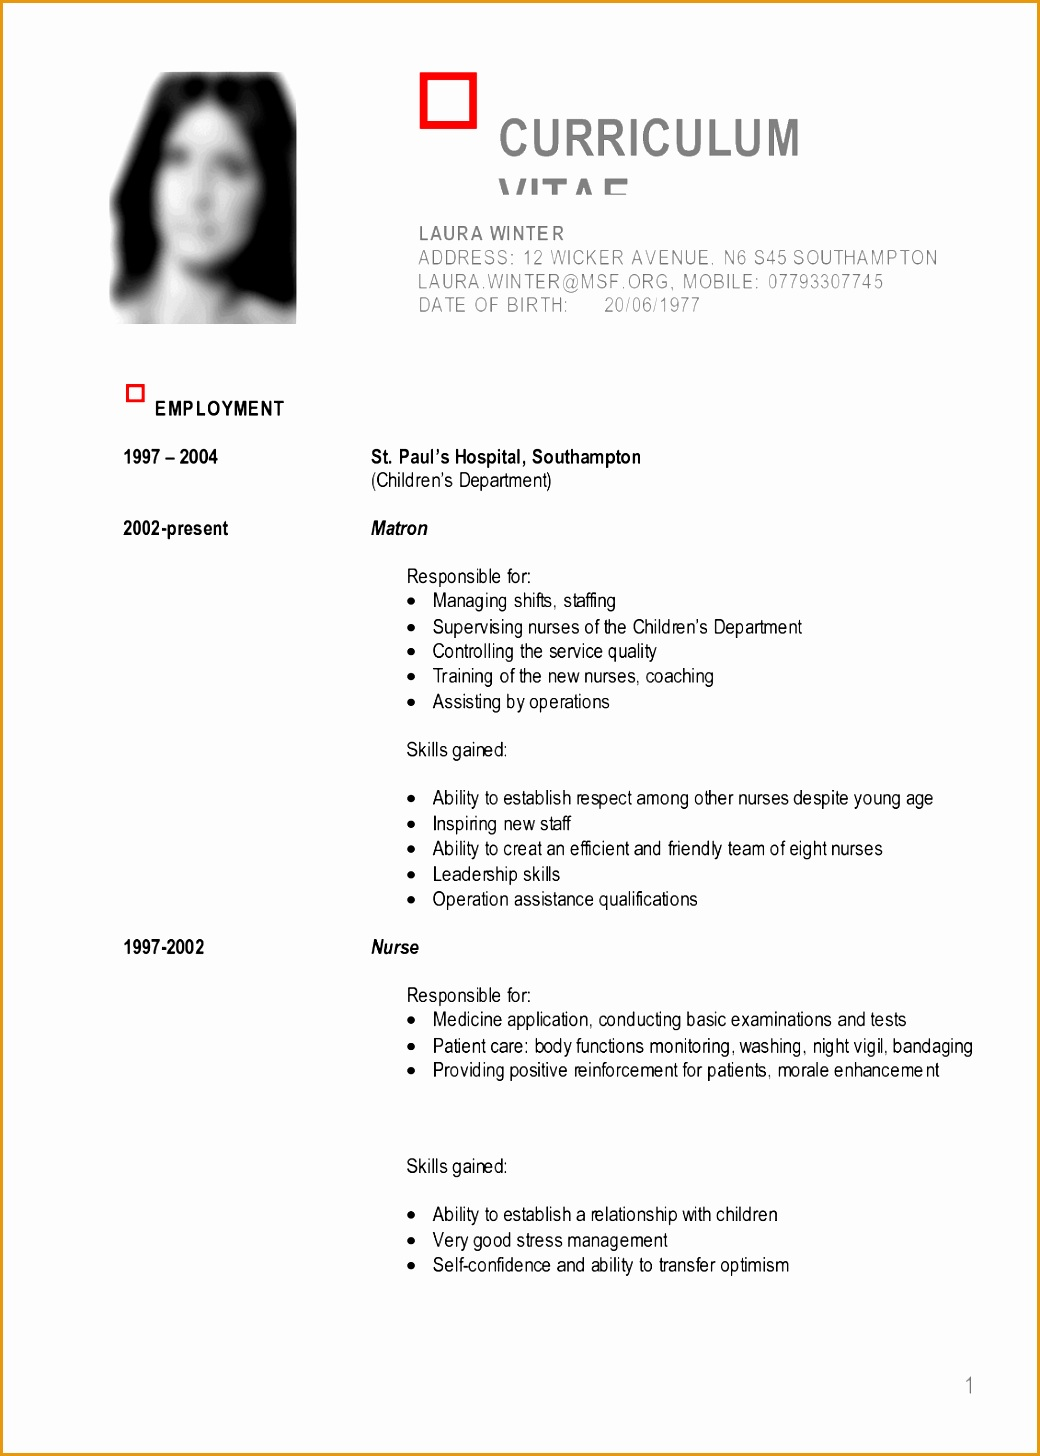 sample curriculum vitae logistics manager with sample list skills14561040